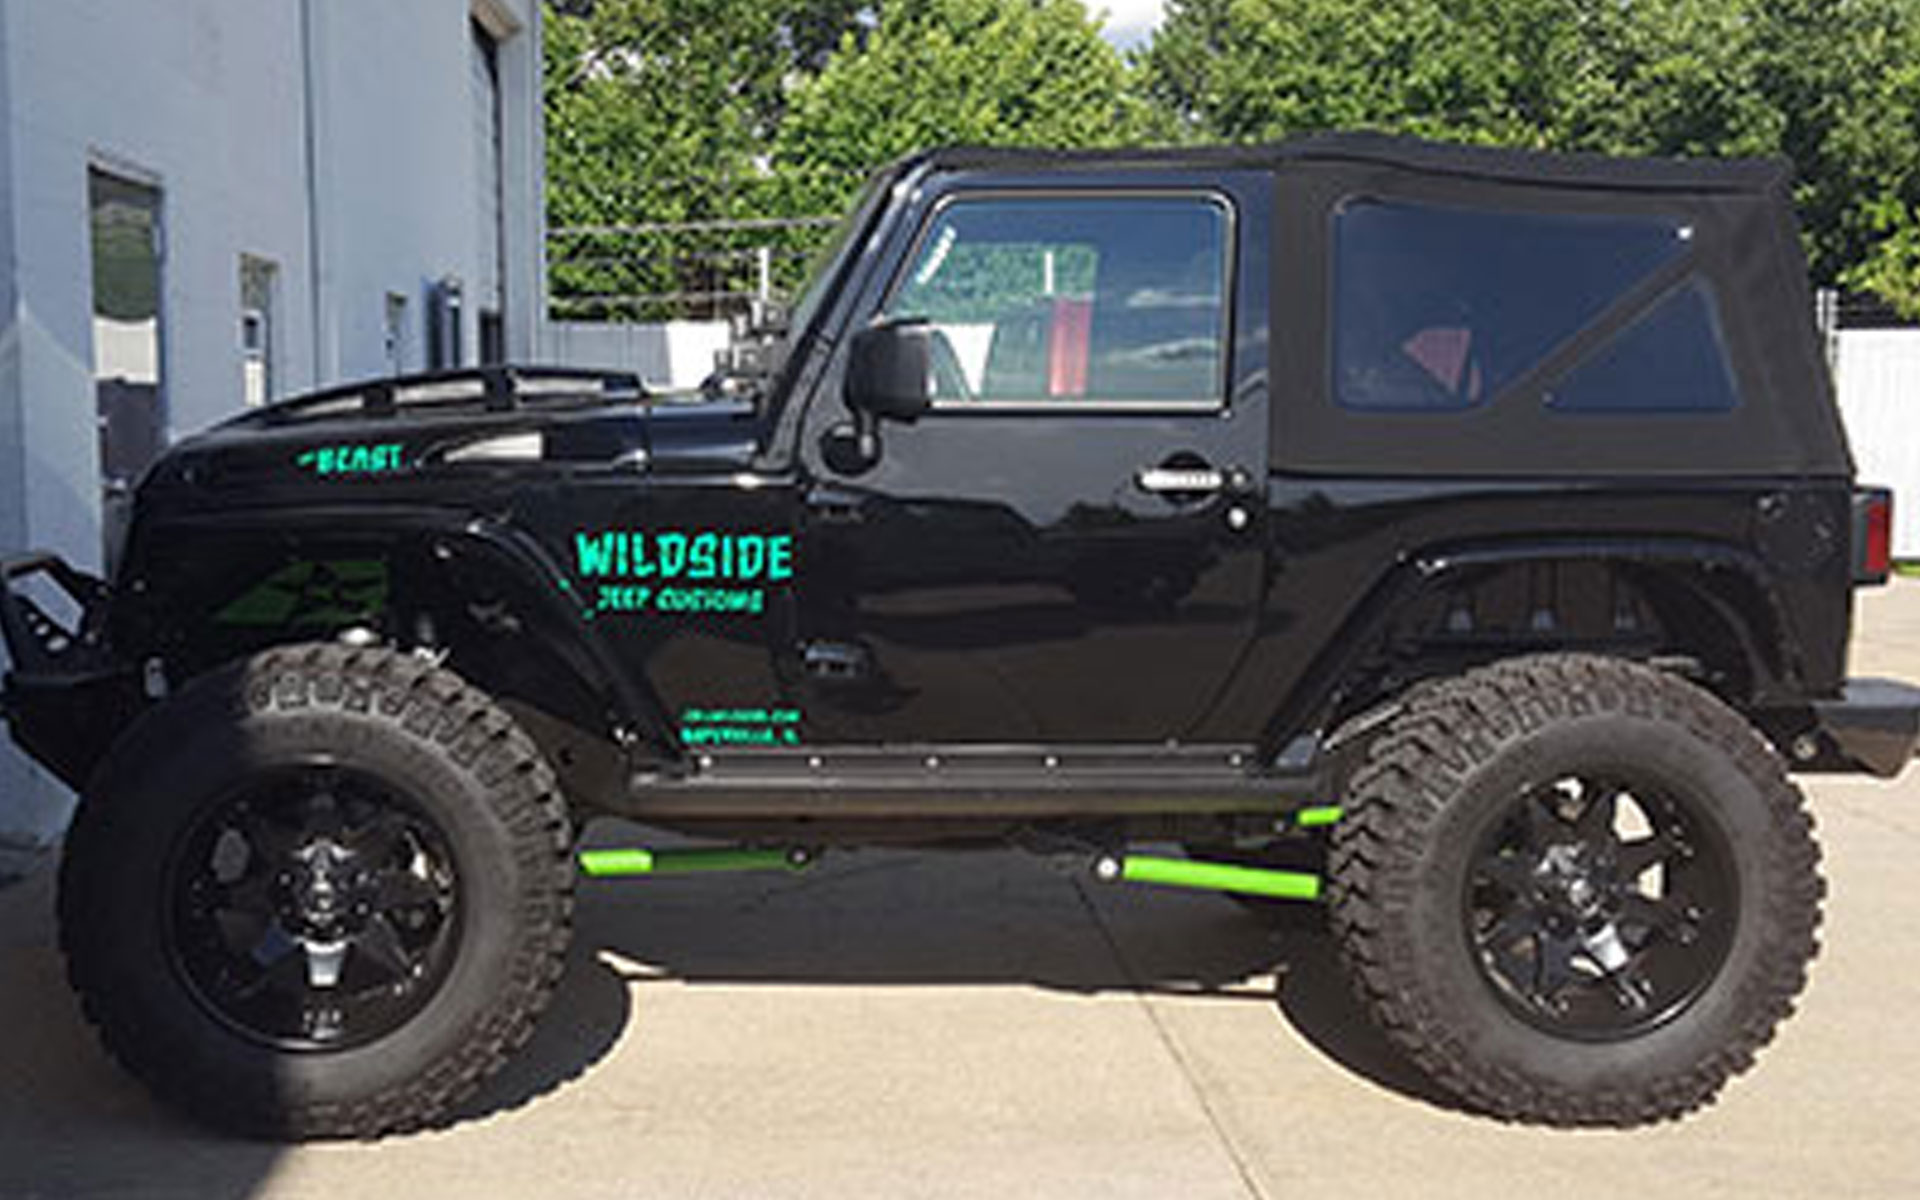 Wildside Motorsports